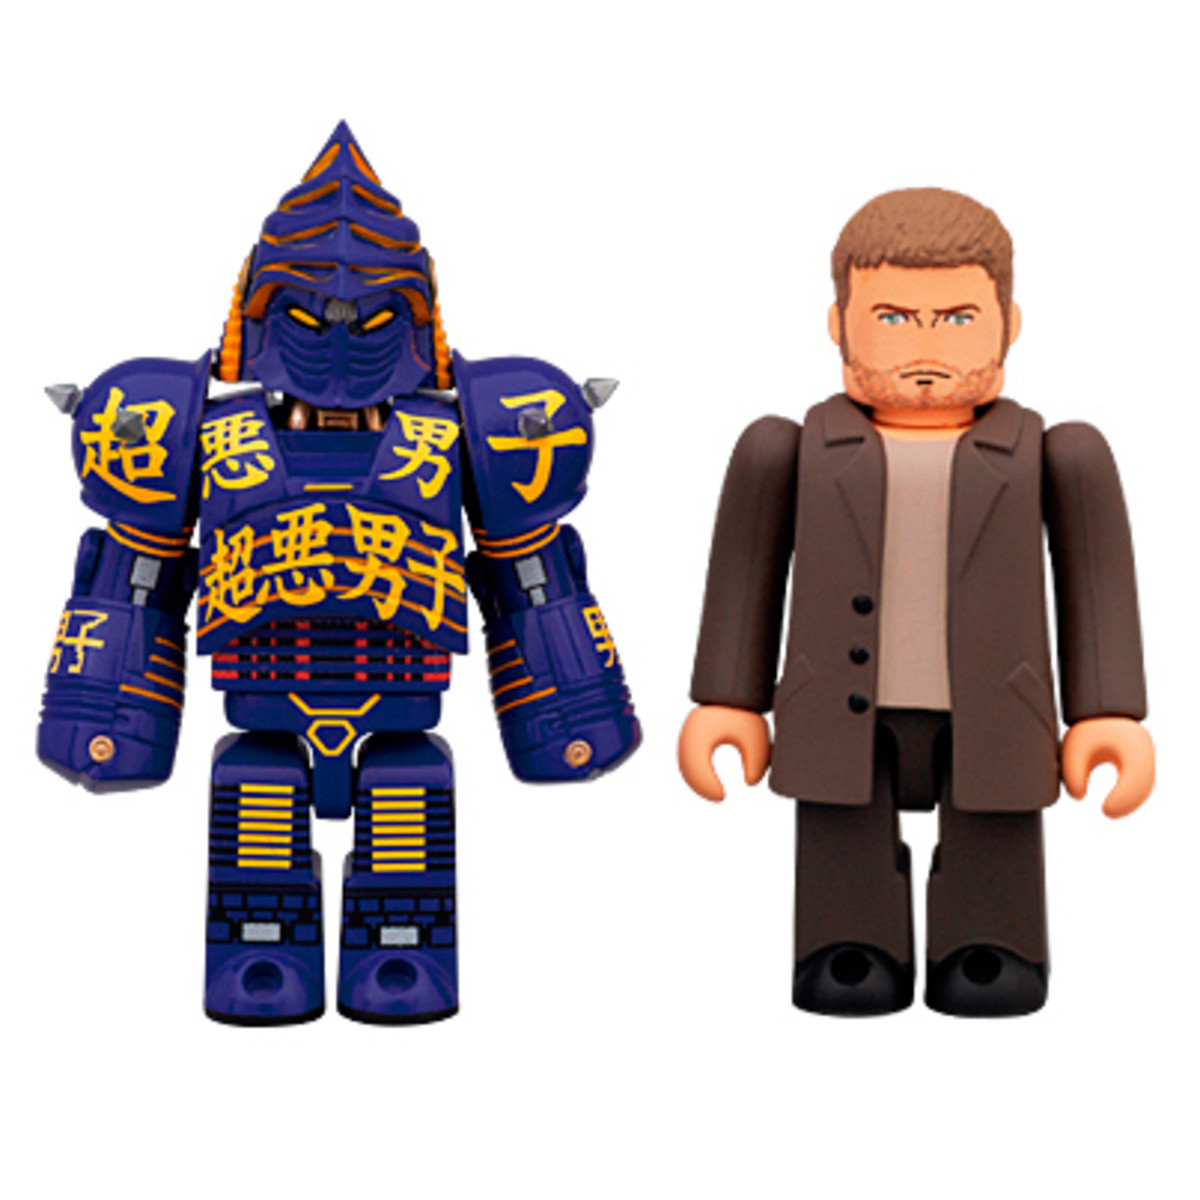 Two sets of Kubrick minifigs: Noisy Boy and Charley, or Atom and Max together.